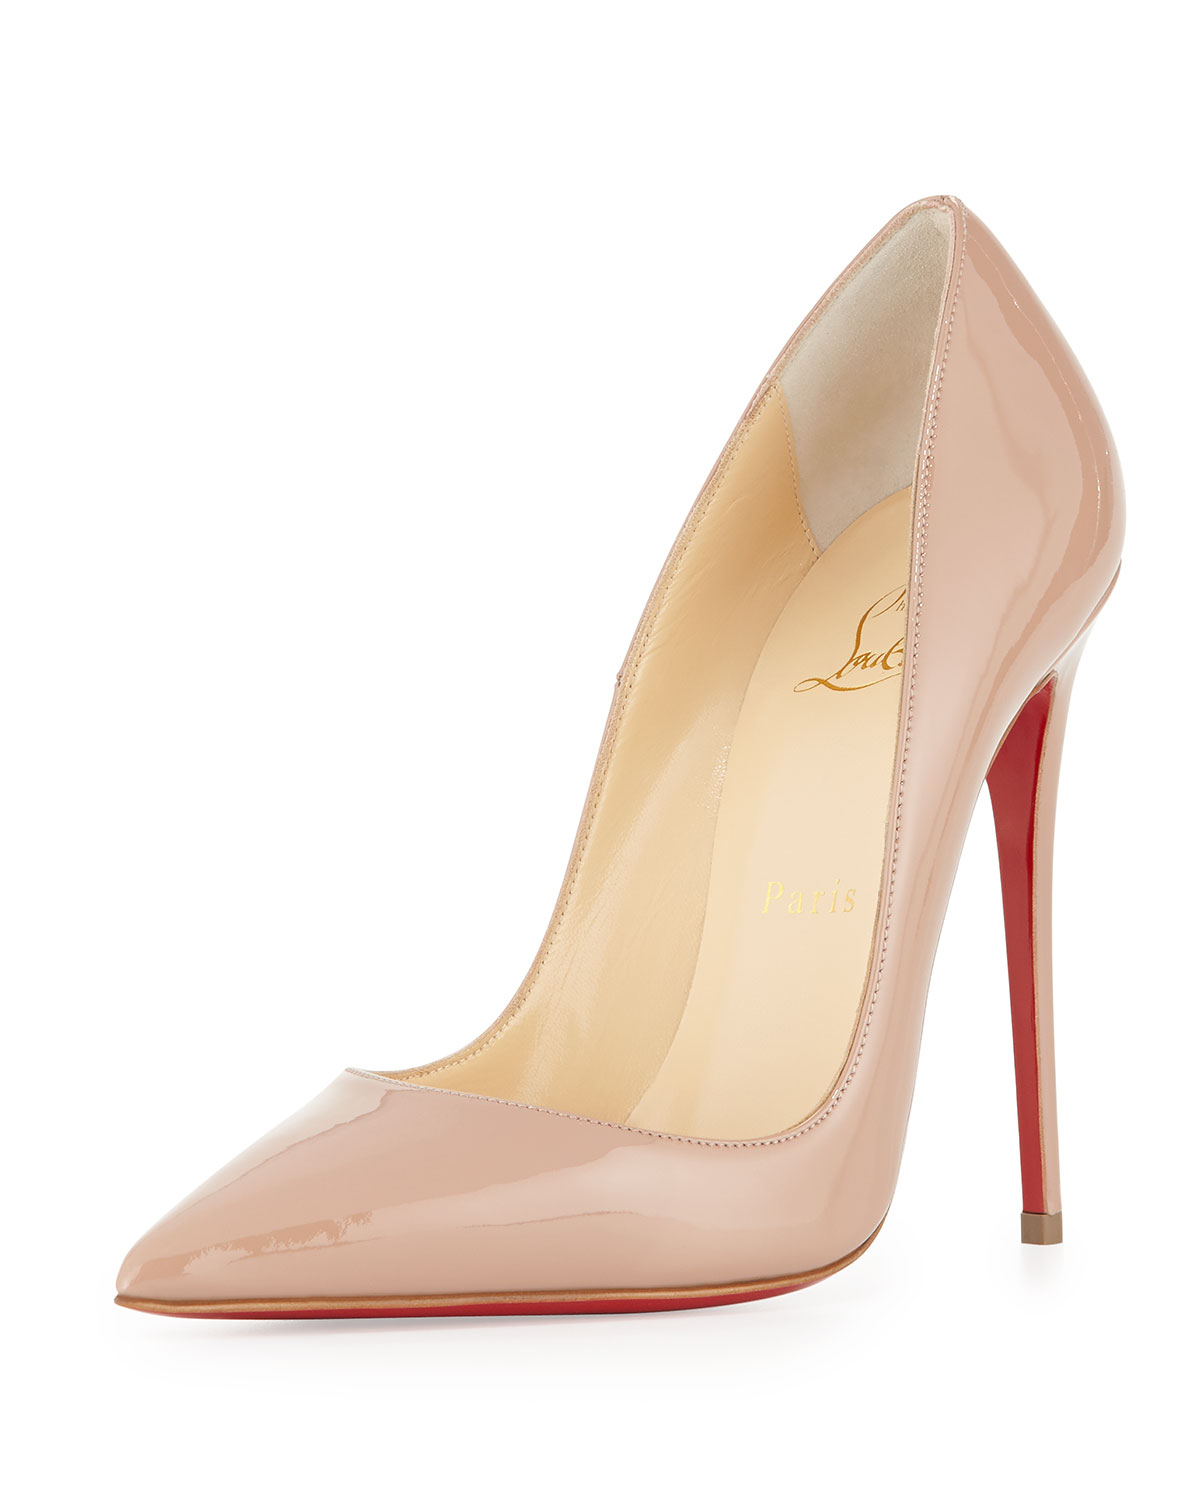 christian louboutin so kate patent 120mm red sole pump nude rh neimanmarcus com